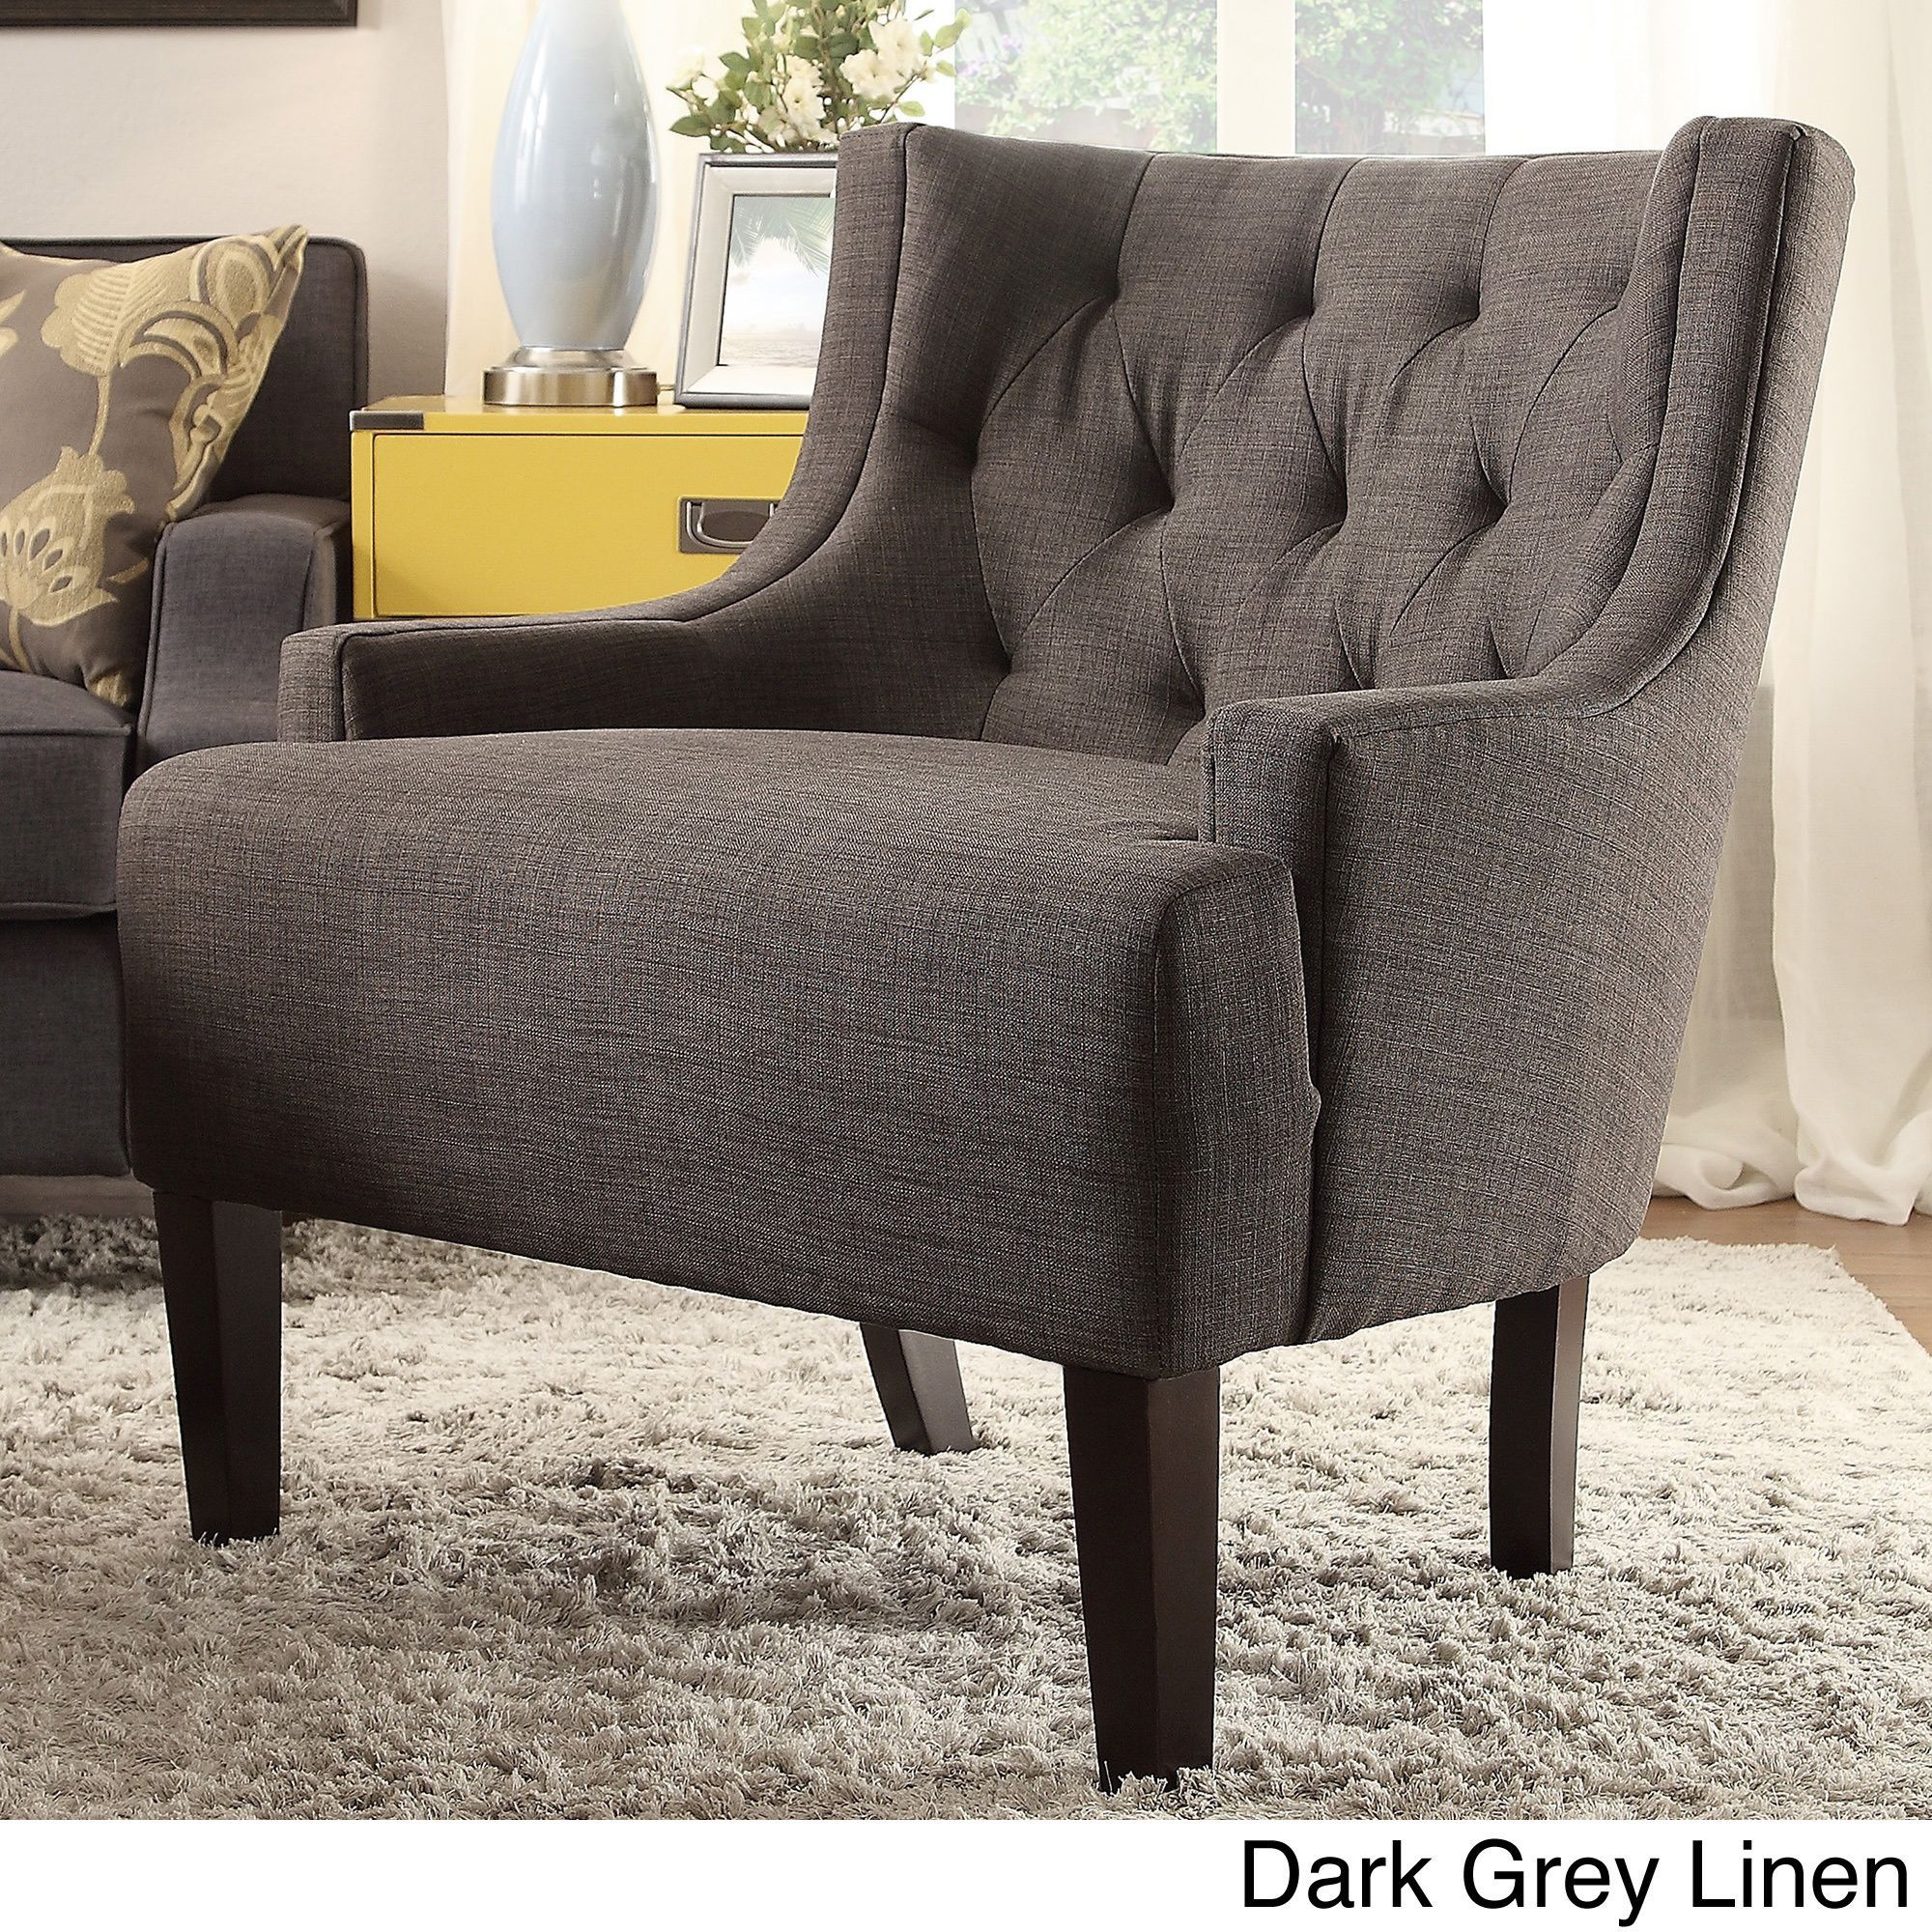 High Quality @Overstock   Tess Wingback Tufted Linen Upholstered Club Chair   Made With Superb  Comfort And Photo